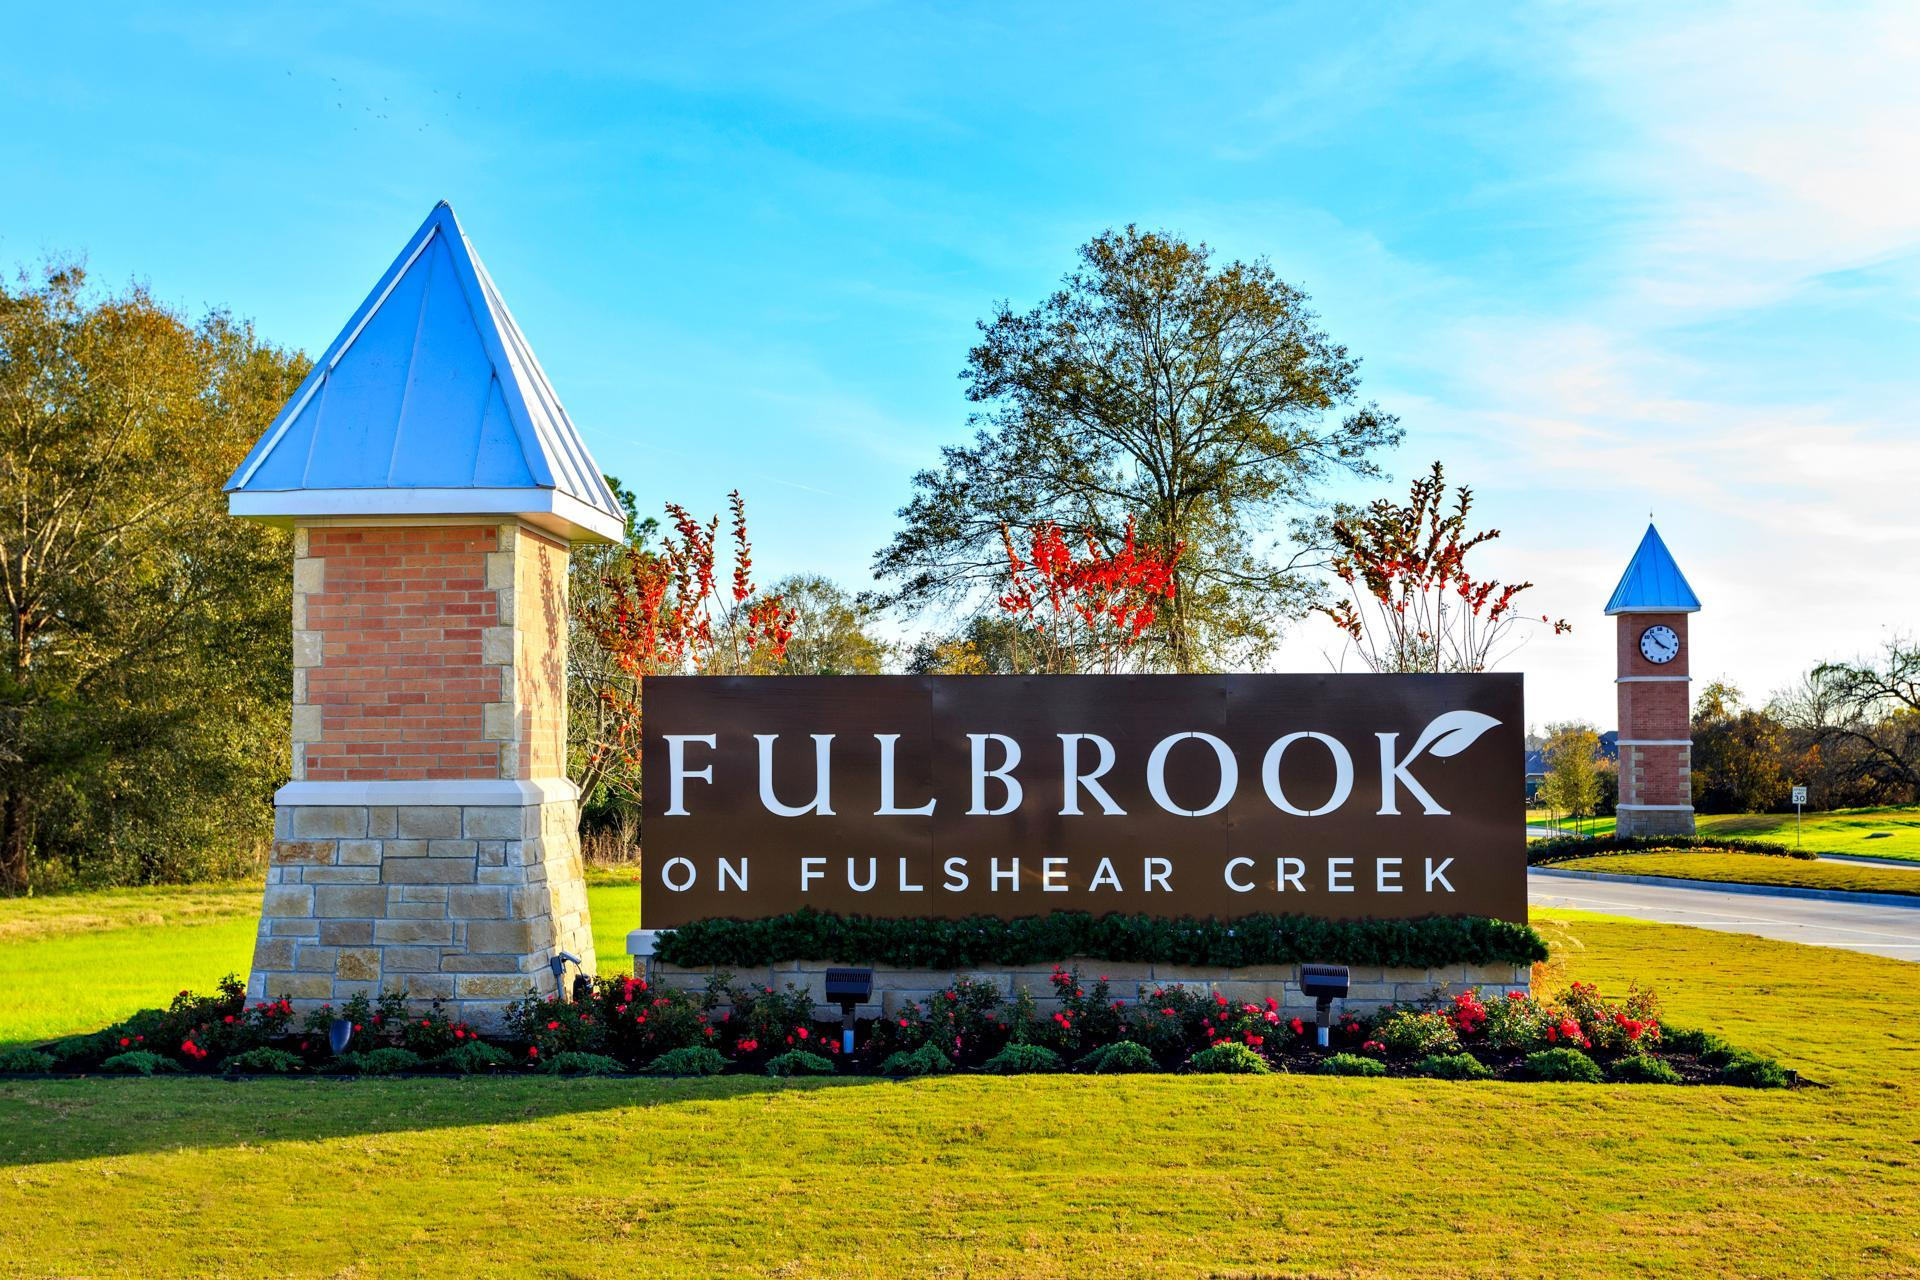 Fulbrook on Fulshear Creek Entrance